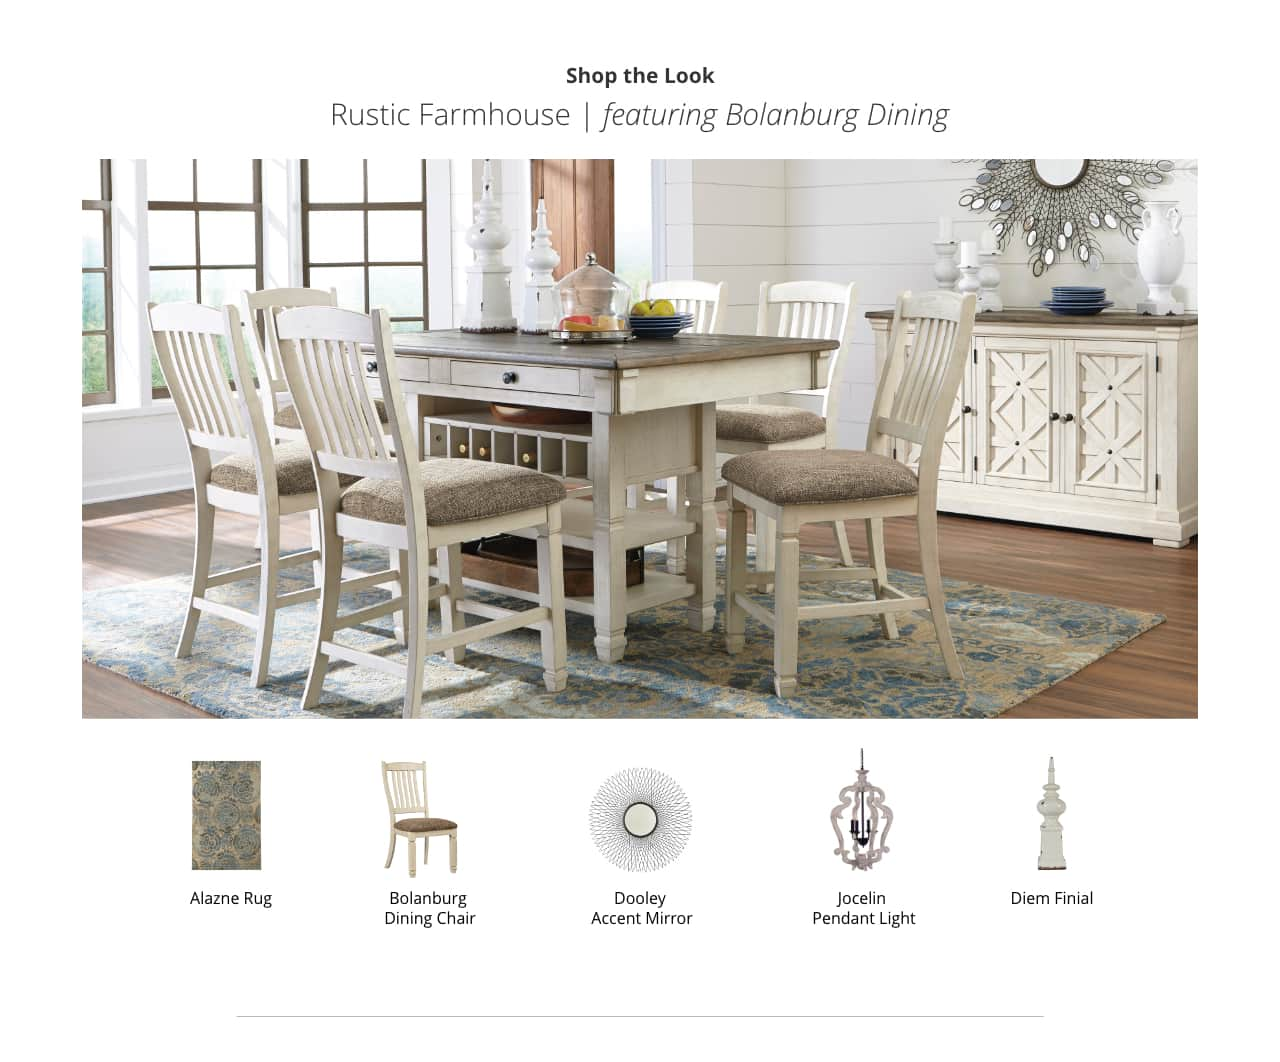 kitchen dining room furniture ashley home accent pieces for table rustic farmhouse bolanburg inch wooden legs contemporary set farm thin cabinet studded chairs christmas placemats